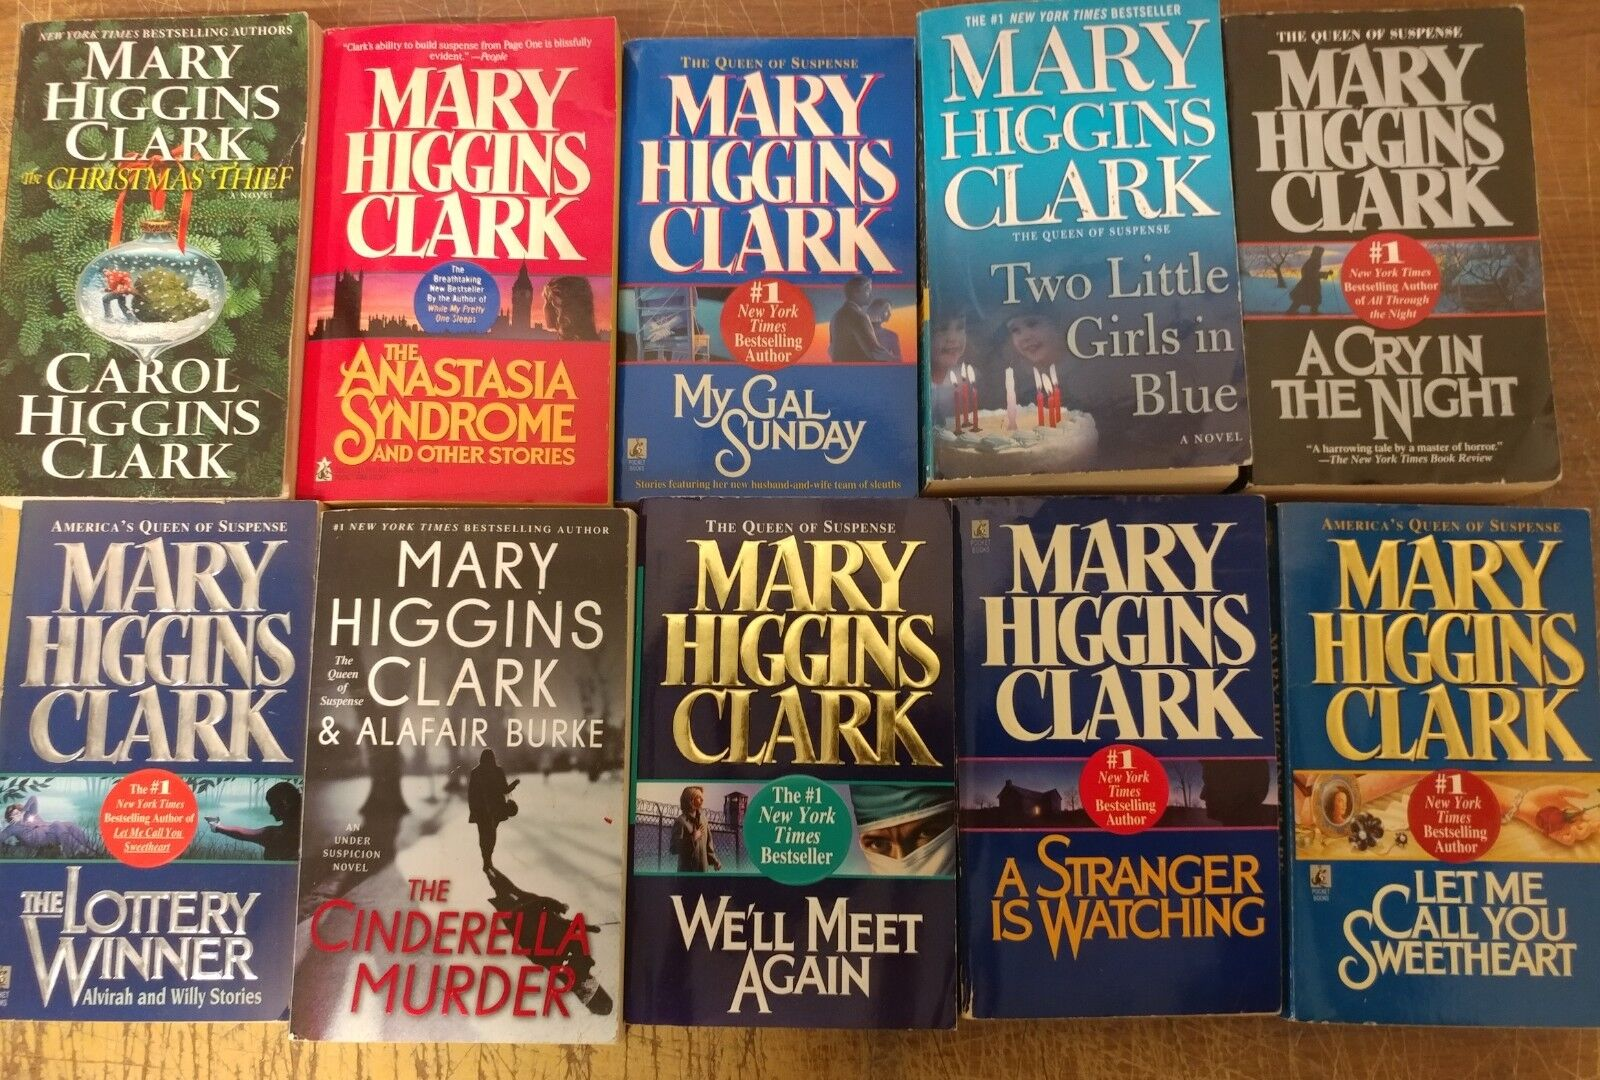 an analysis of the novel a stranger is watching by mary higgins clark A stranger is watching by mary higgins clark two years after nina peterson's brutal murder her husband steve is still fighting to bring the killer to justice.